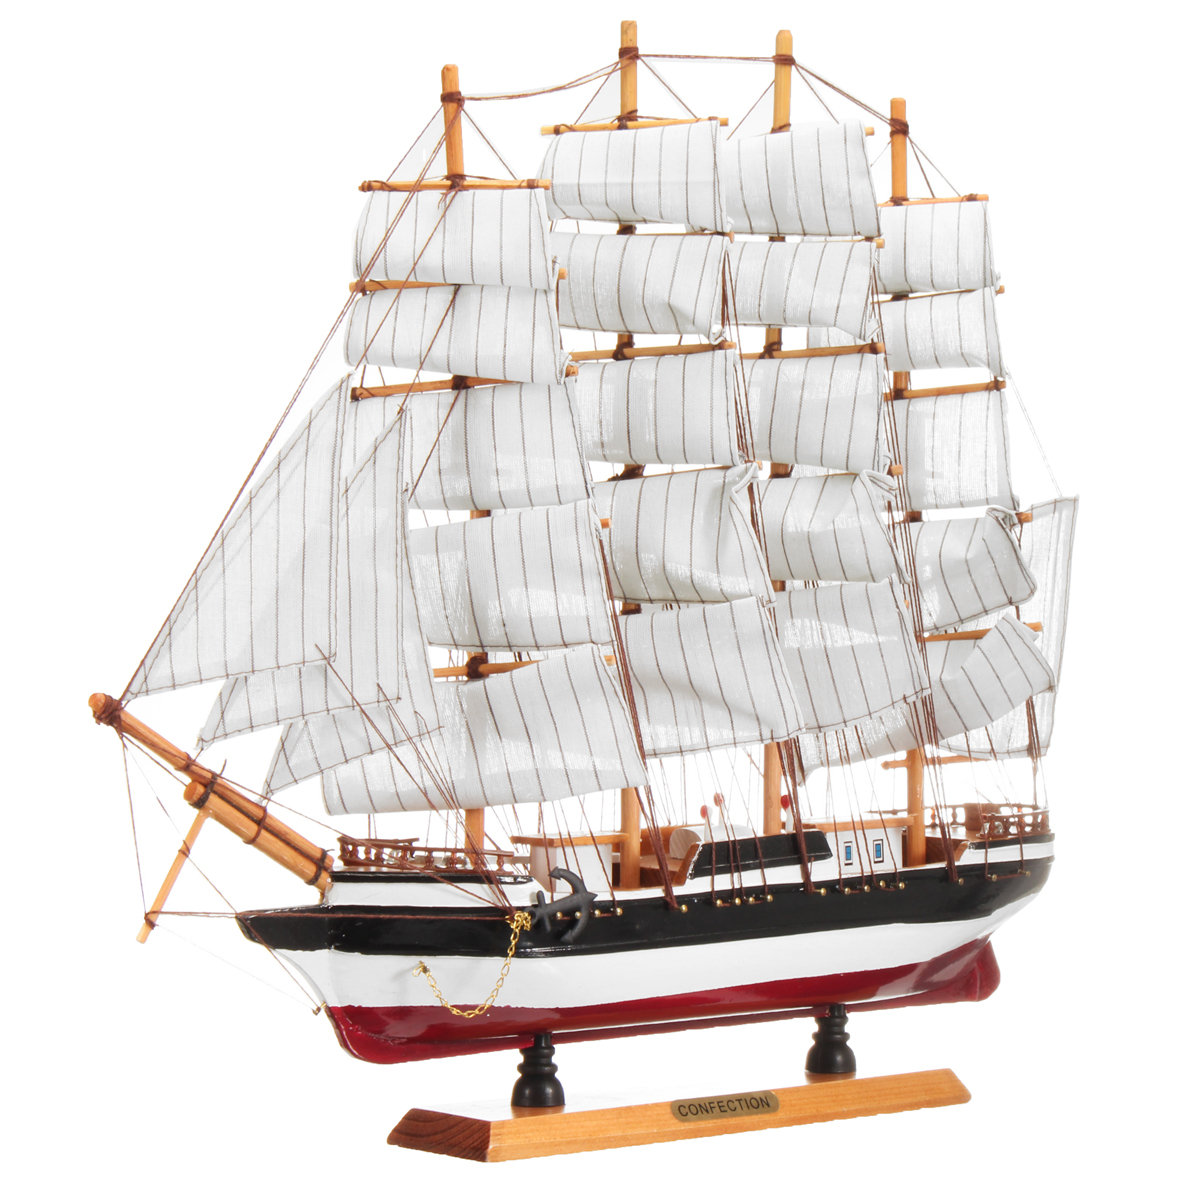 50cm*9cm*44cm Wooden Ship Sailing Boat Sailboat Model DIY Kit Assembly Ocean Home Decoration